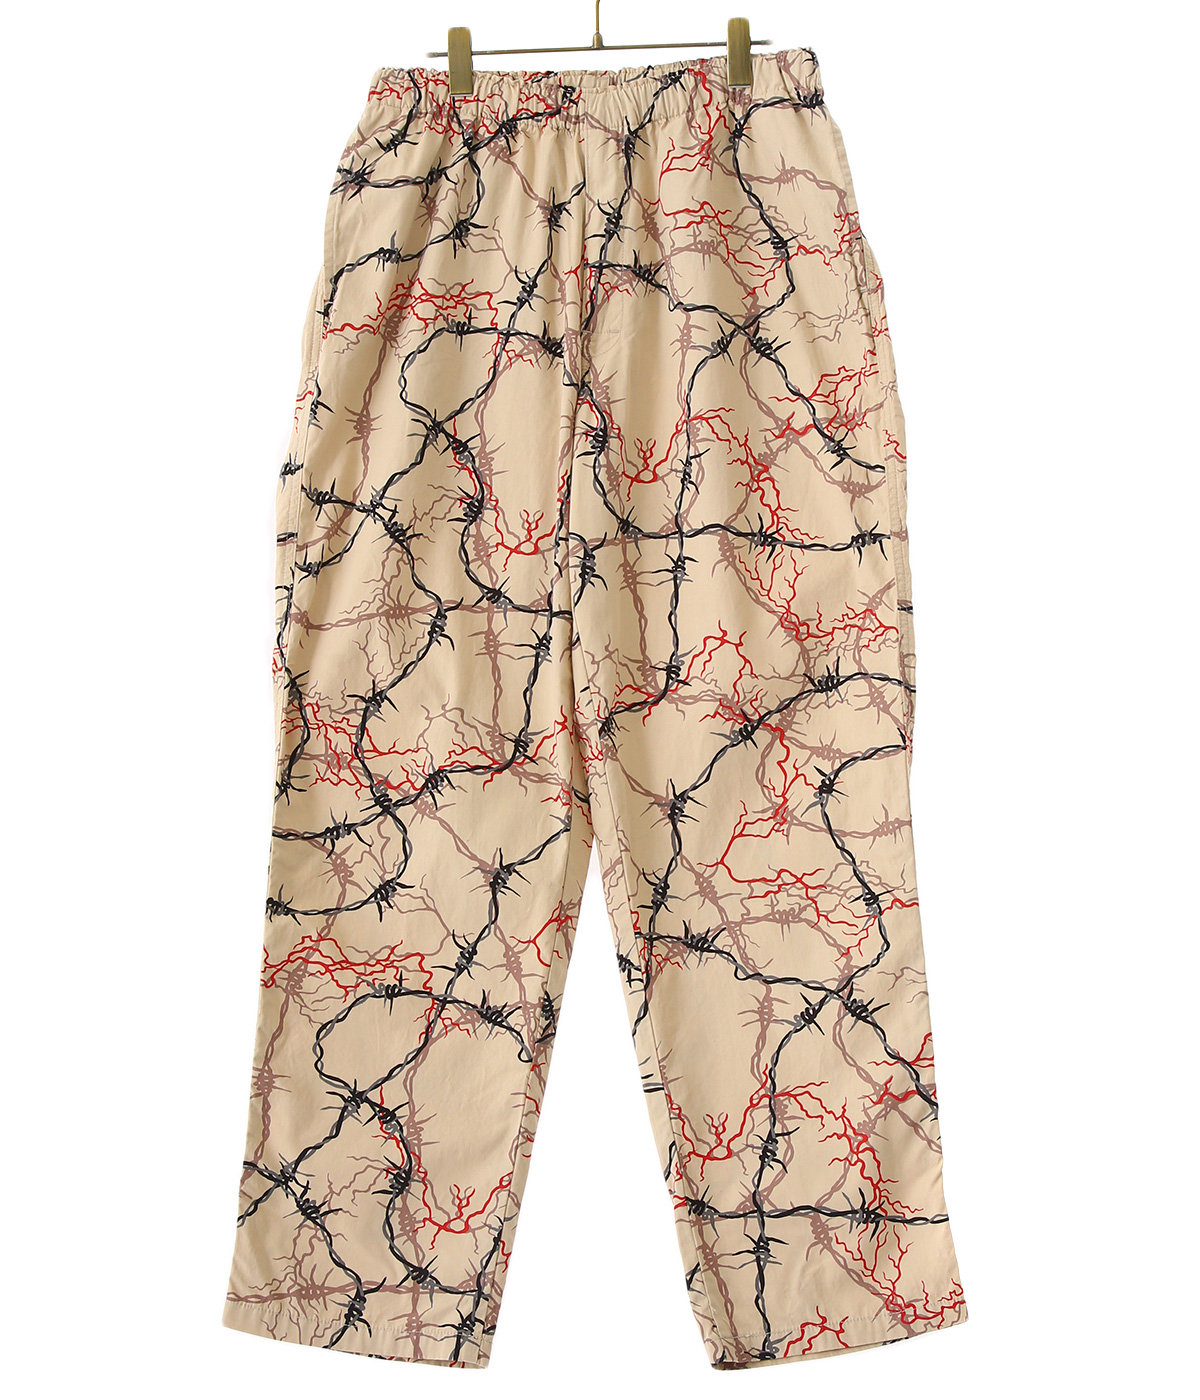 PANTS WIRE